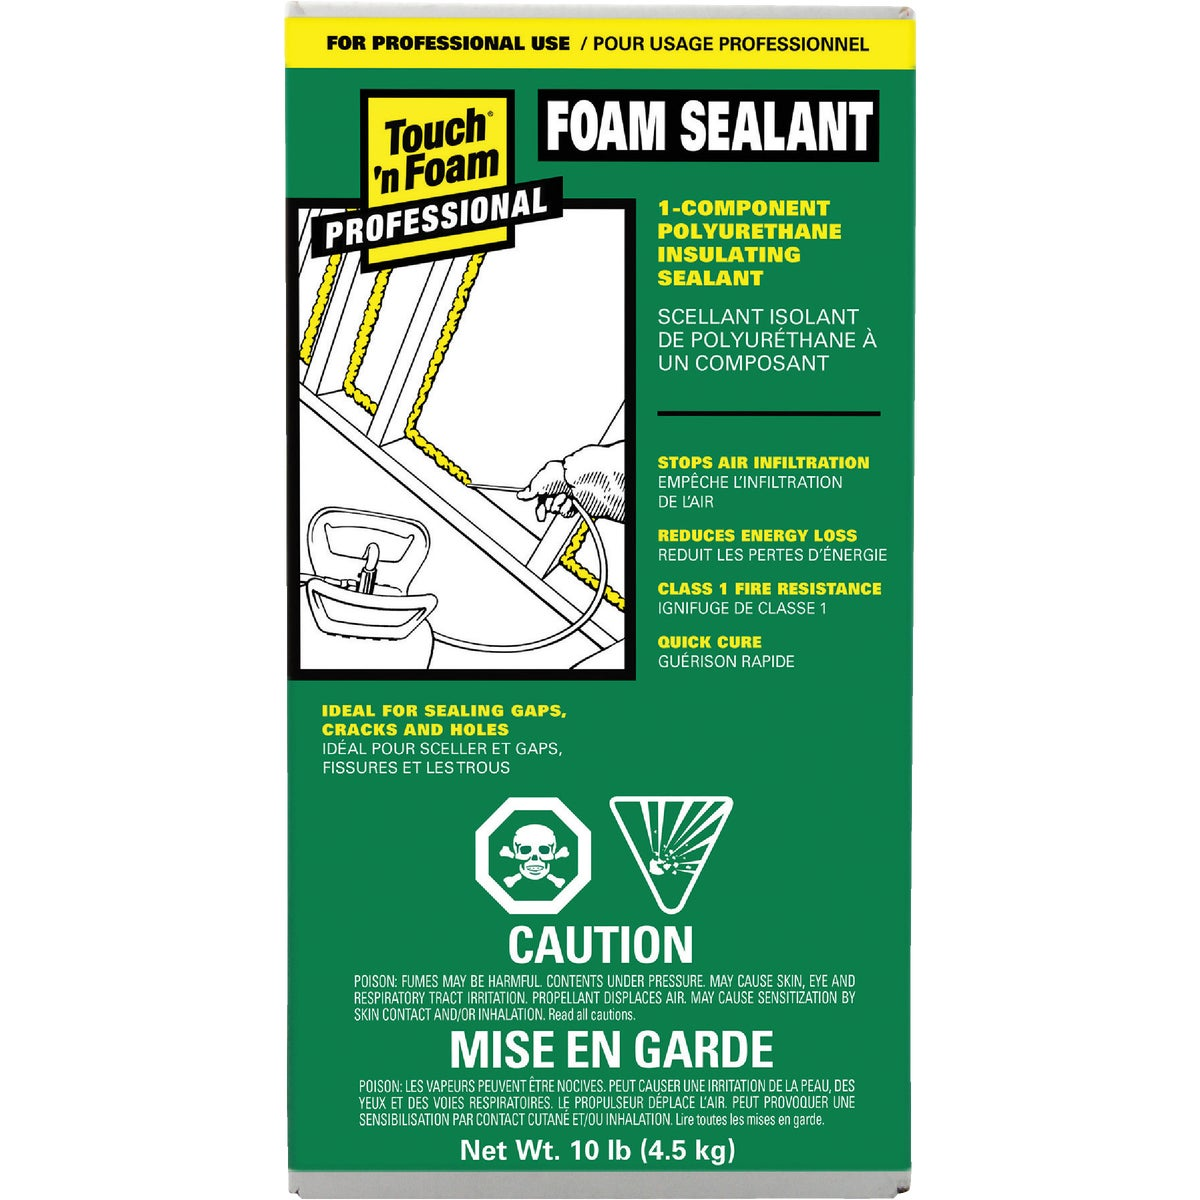 10LB CYLNDR FOAM SEALANT - 4001110001 by Convenience Products